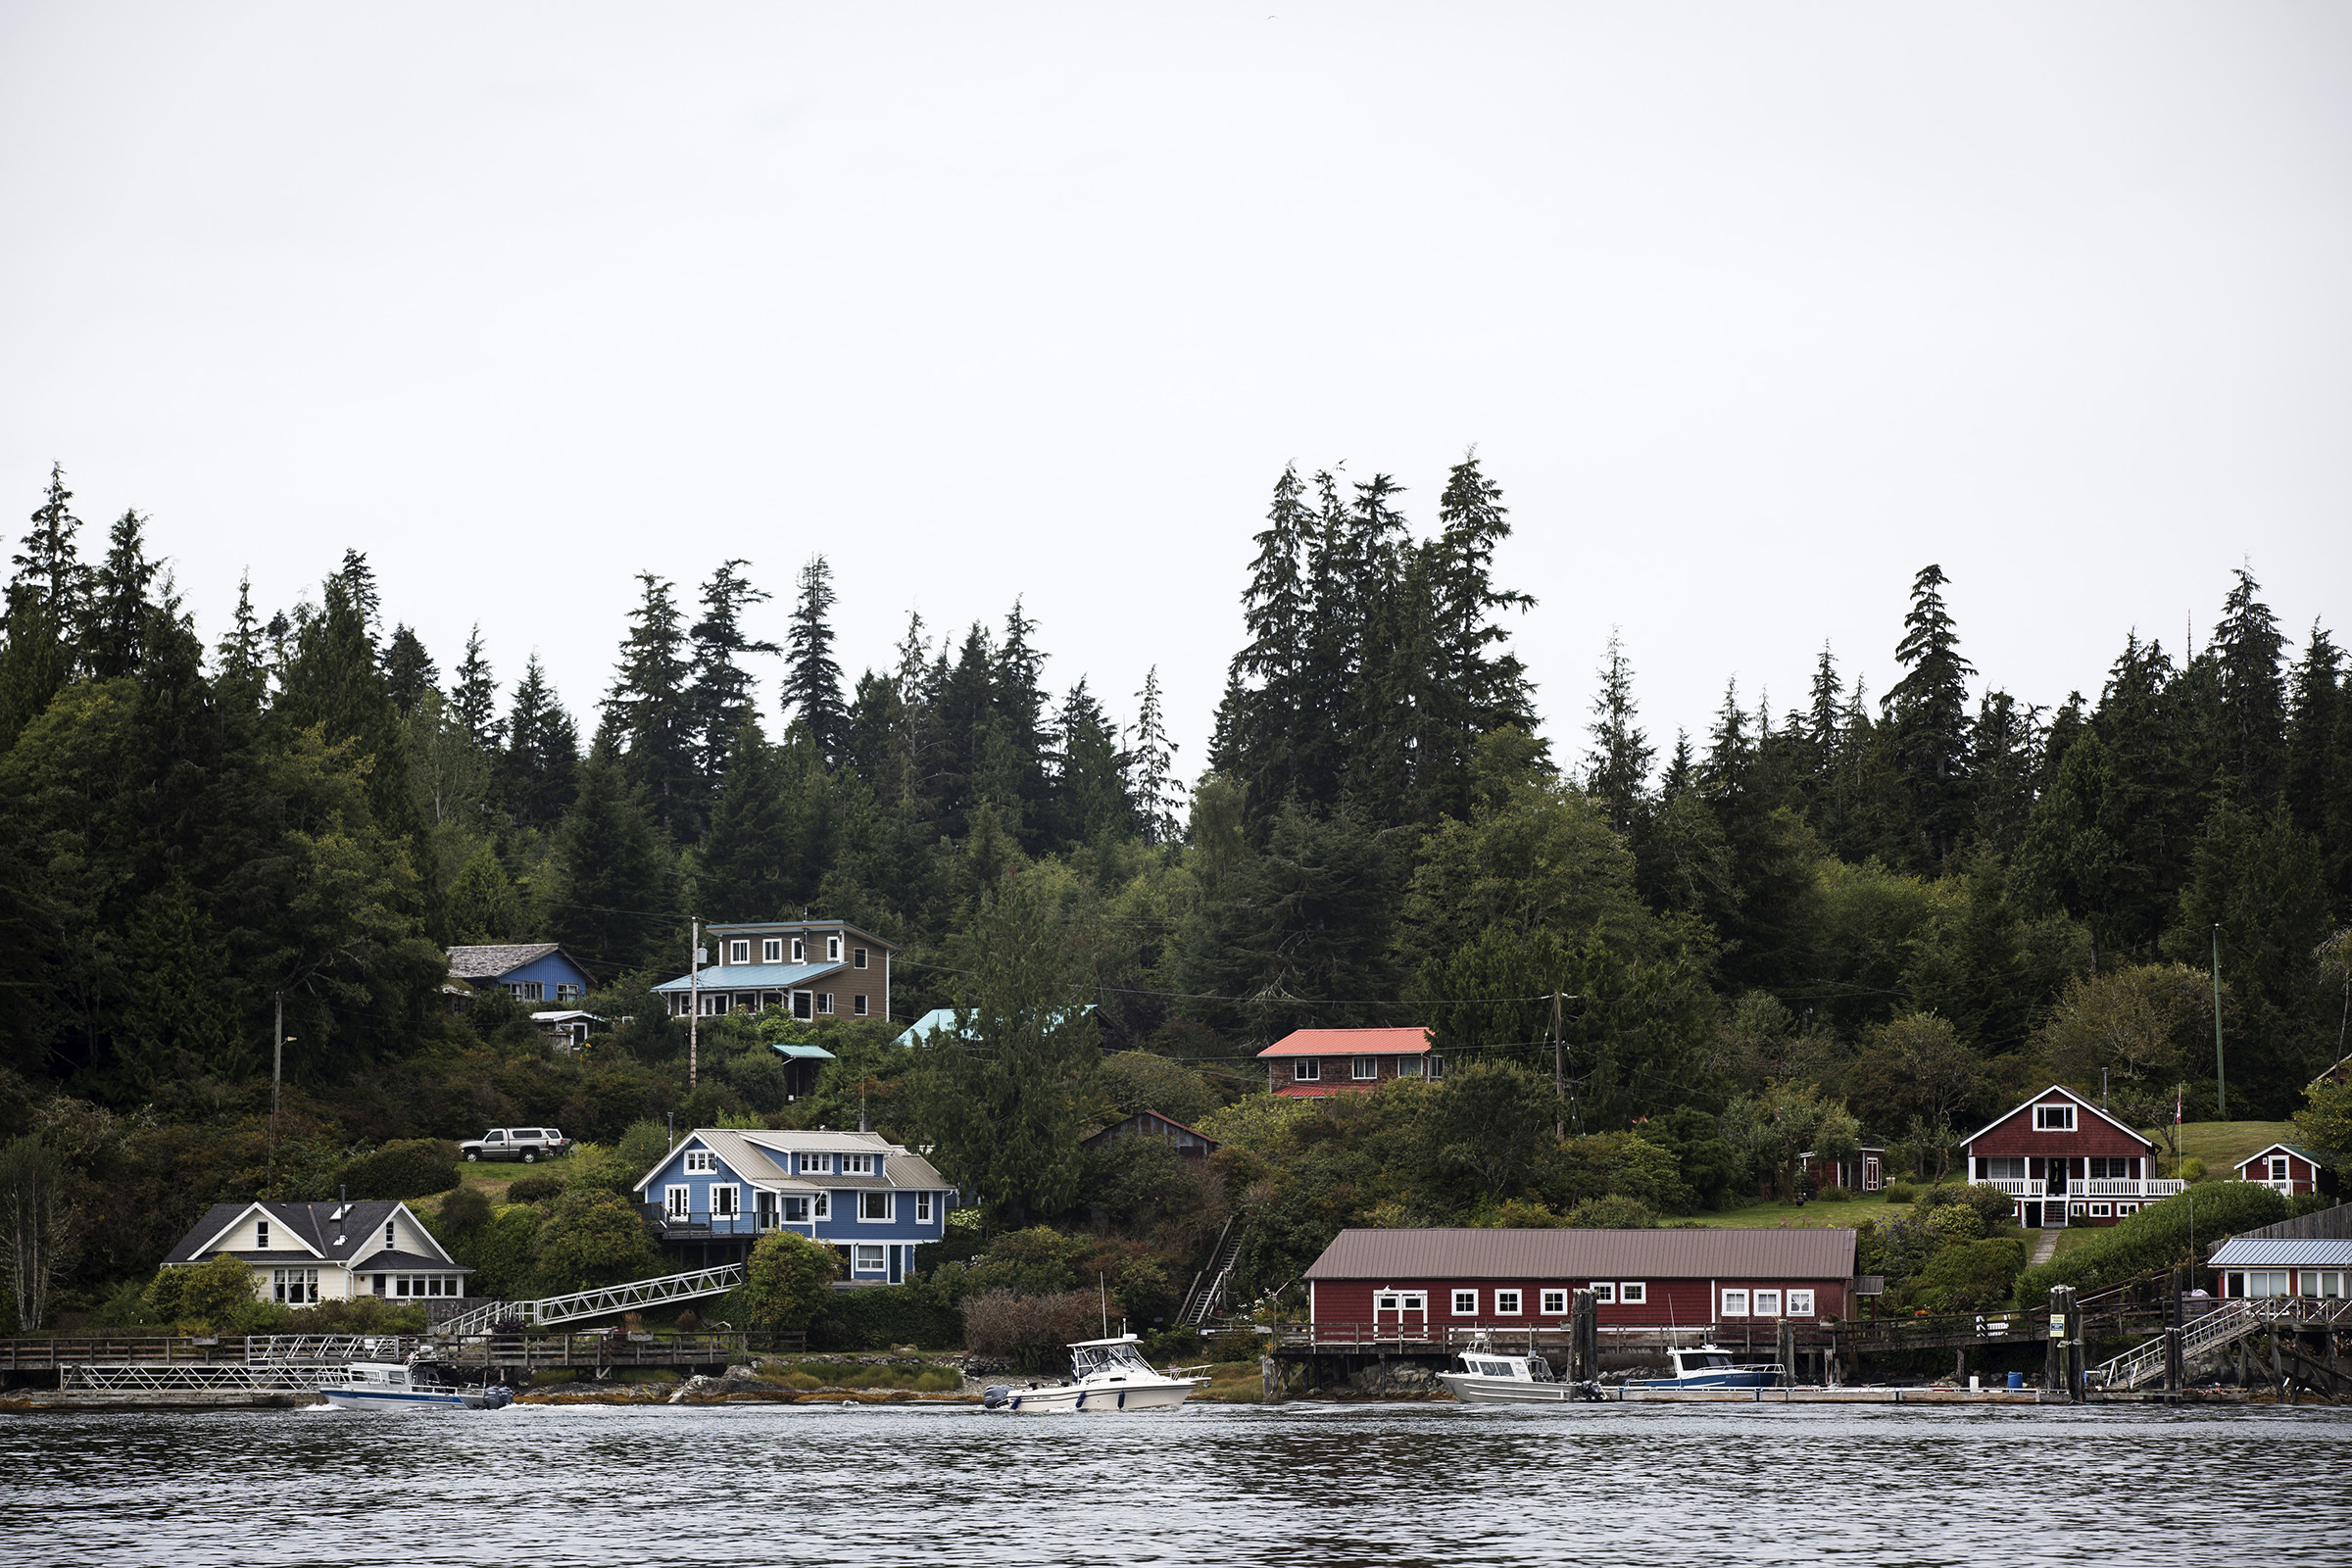 The small town of Bamfield sits on the western edge of the Canadian coast on Vancouver Island.